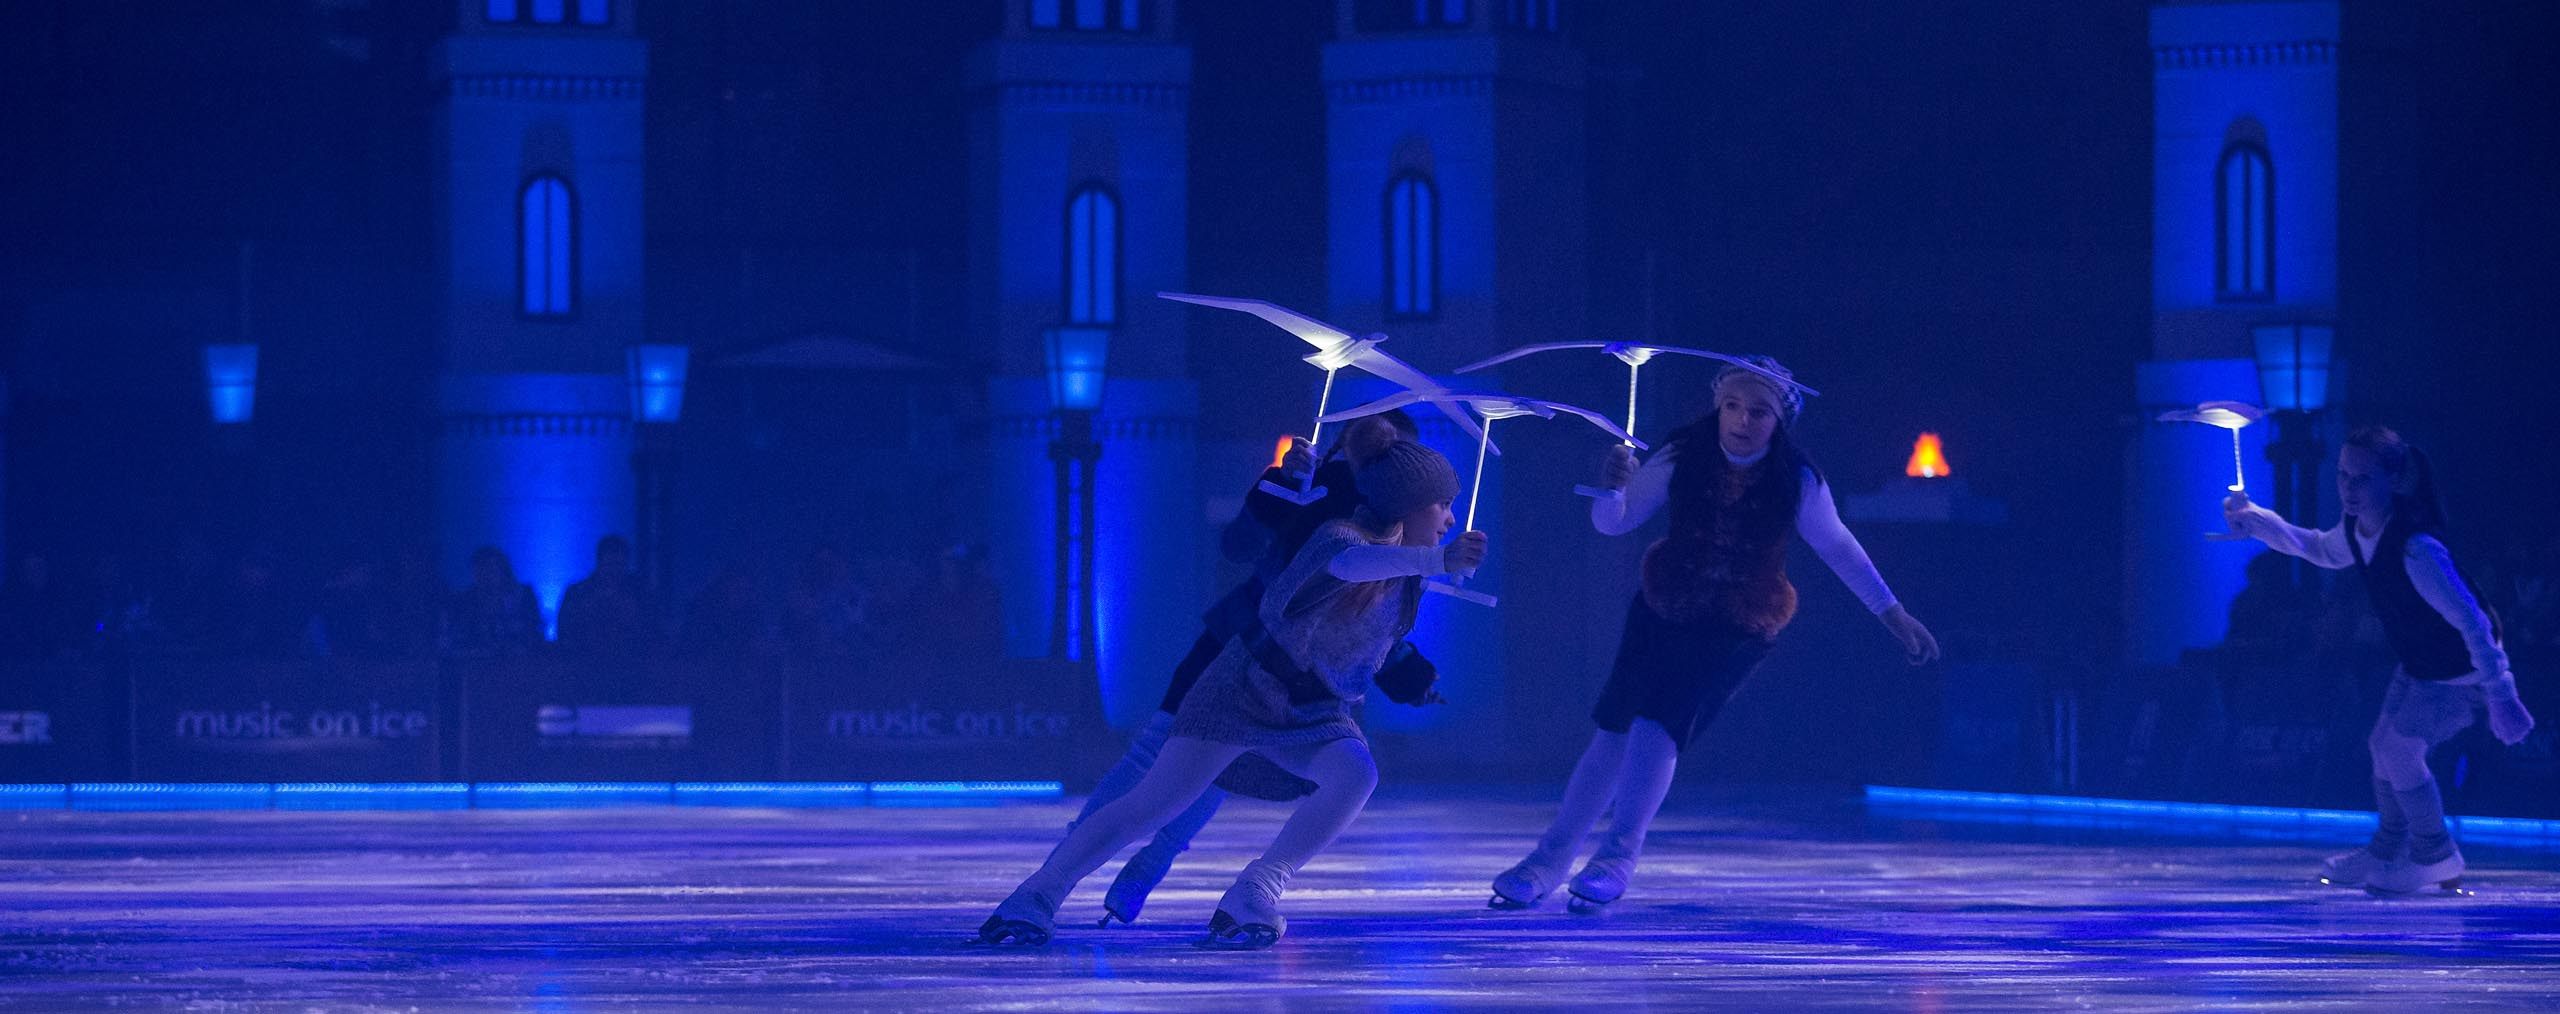 Club Pattinaggio Bellinzona Music on Ice